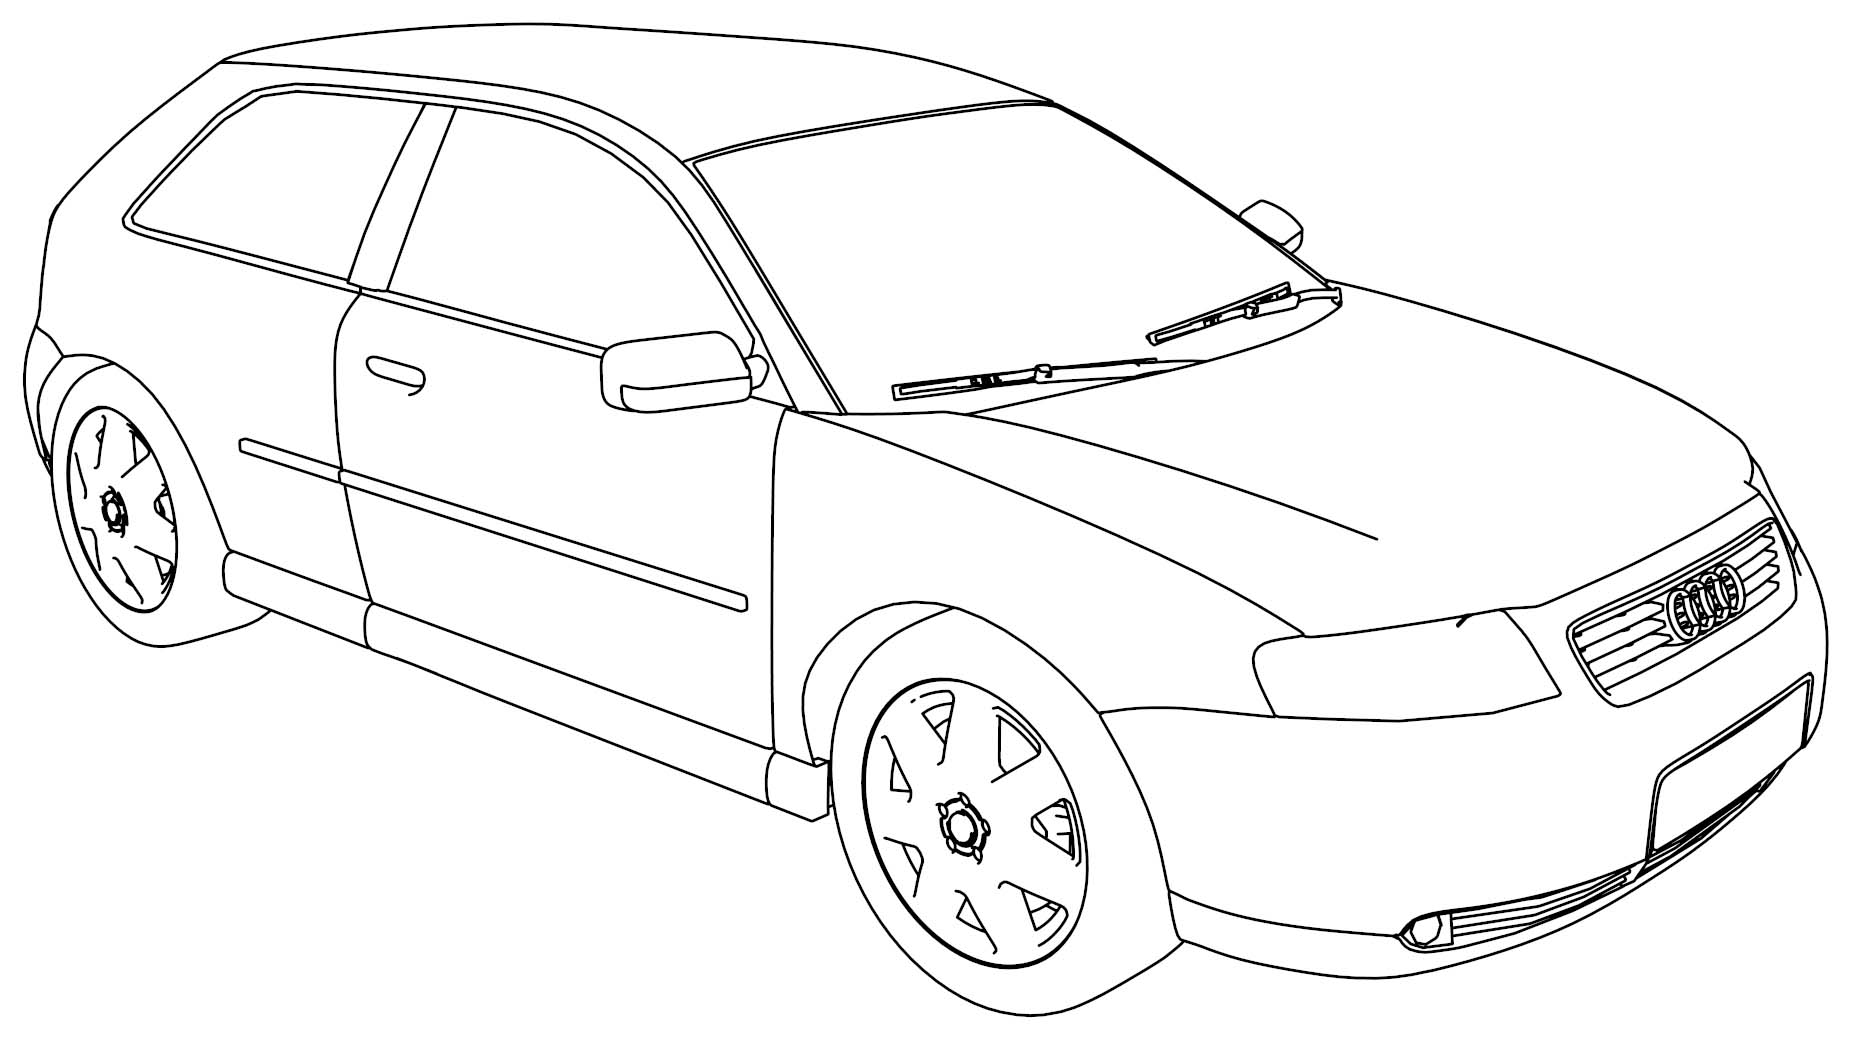 Audi S5 Side Coloring Pages